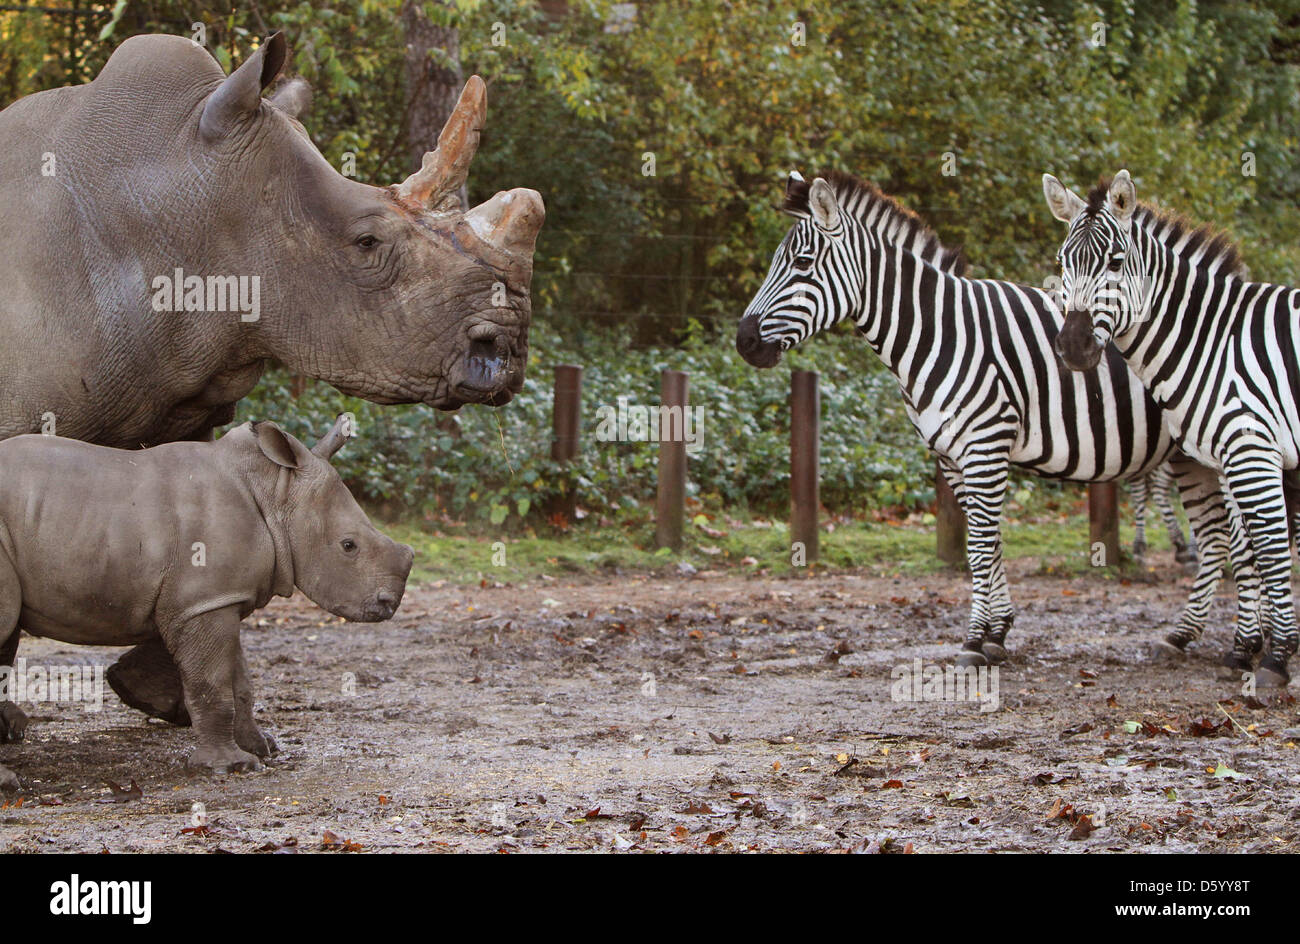 The white rhinoceros Vince of Burgers' Zoo in the Dutch city Arnhem and born in September, plunged his self Thuesday Stock Photo